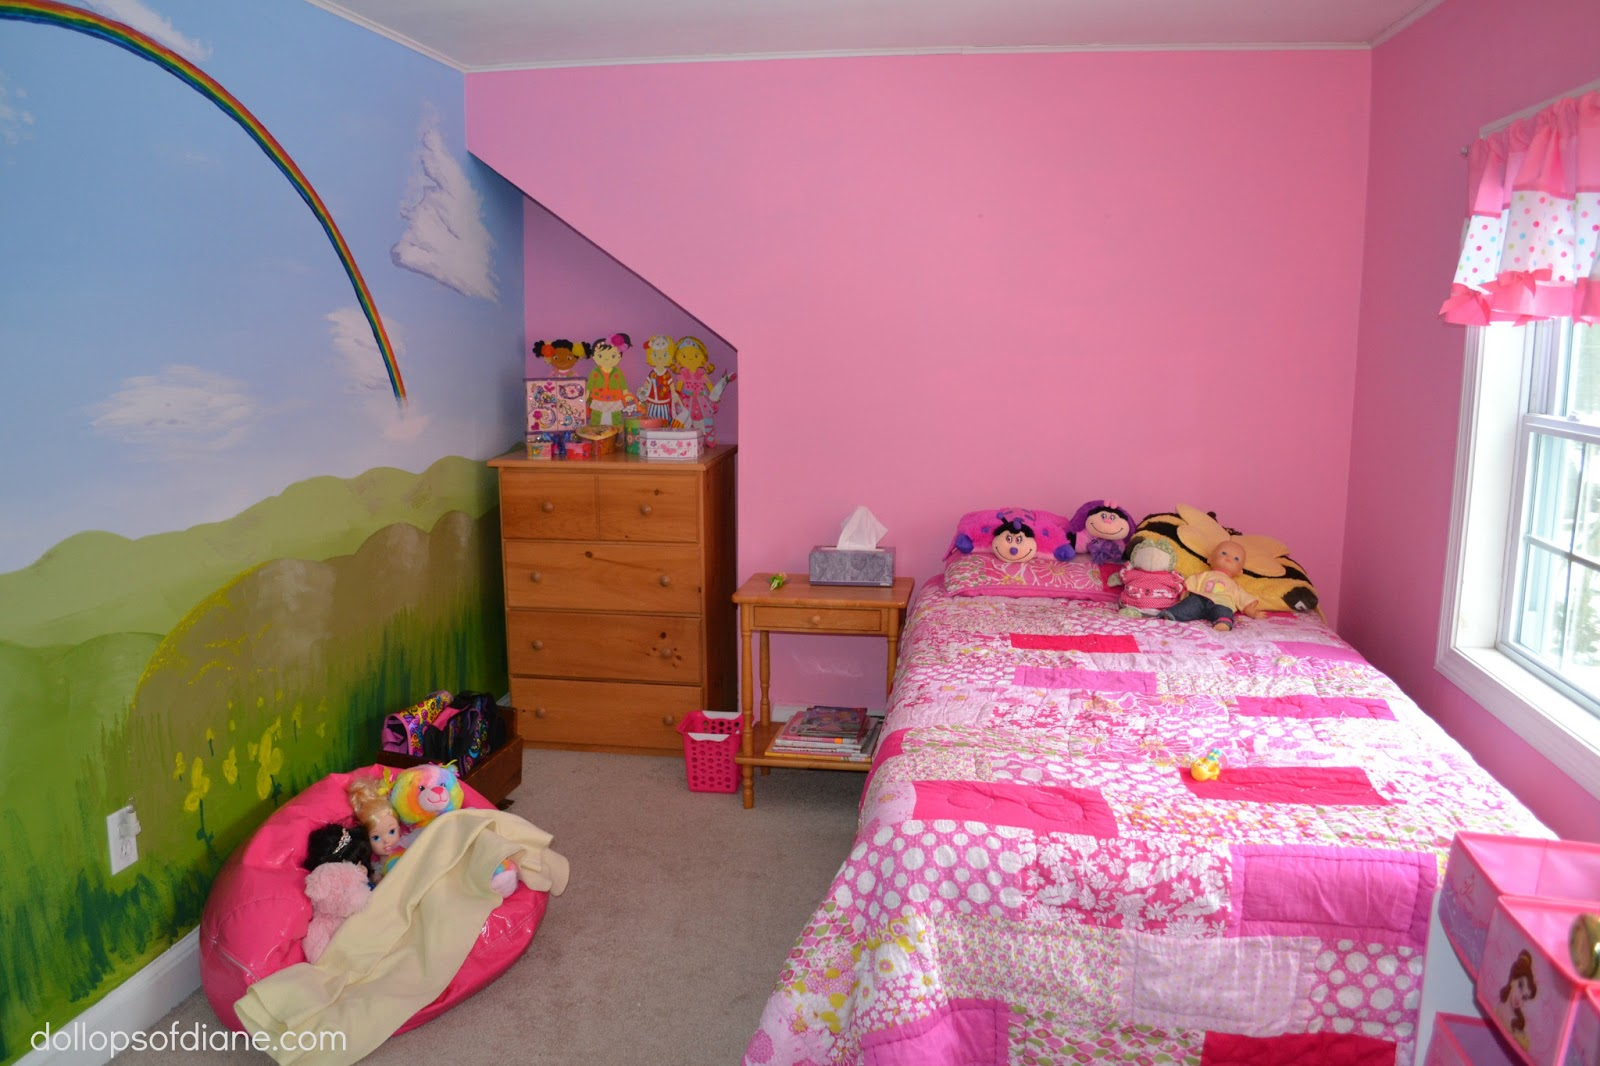 Dollops of diane the perfect room for a five year old girl for 5 year old bedroom ideas